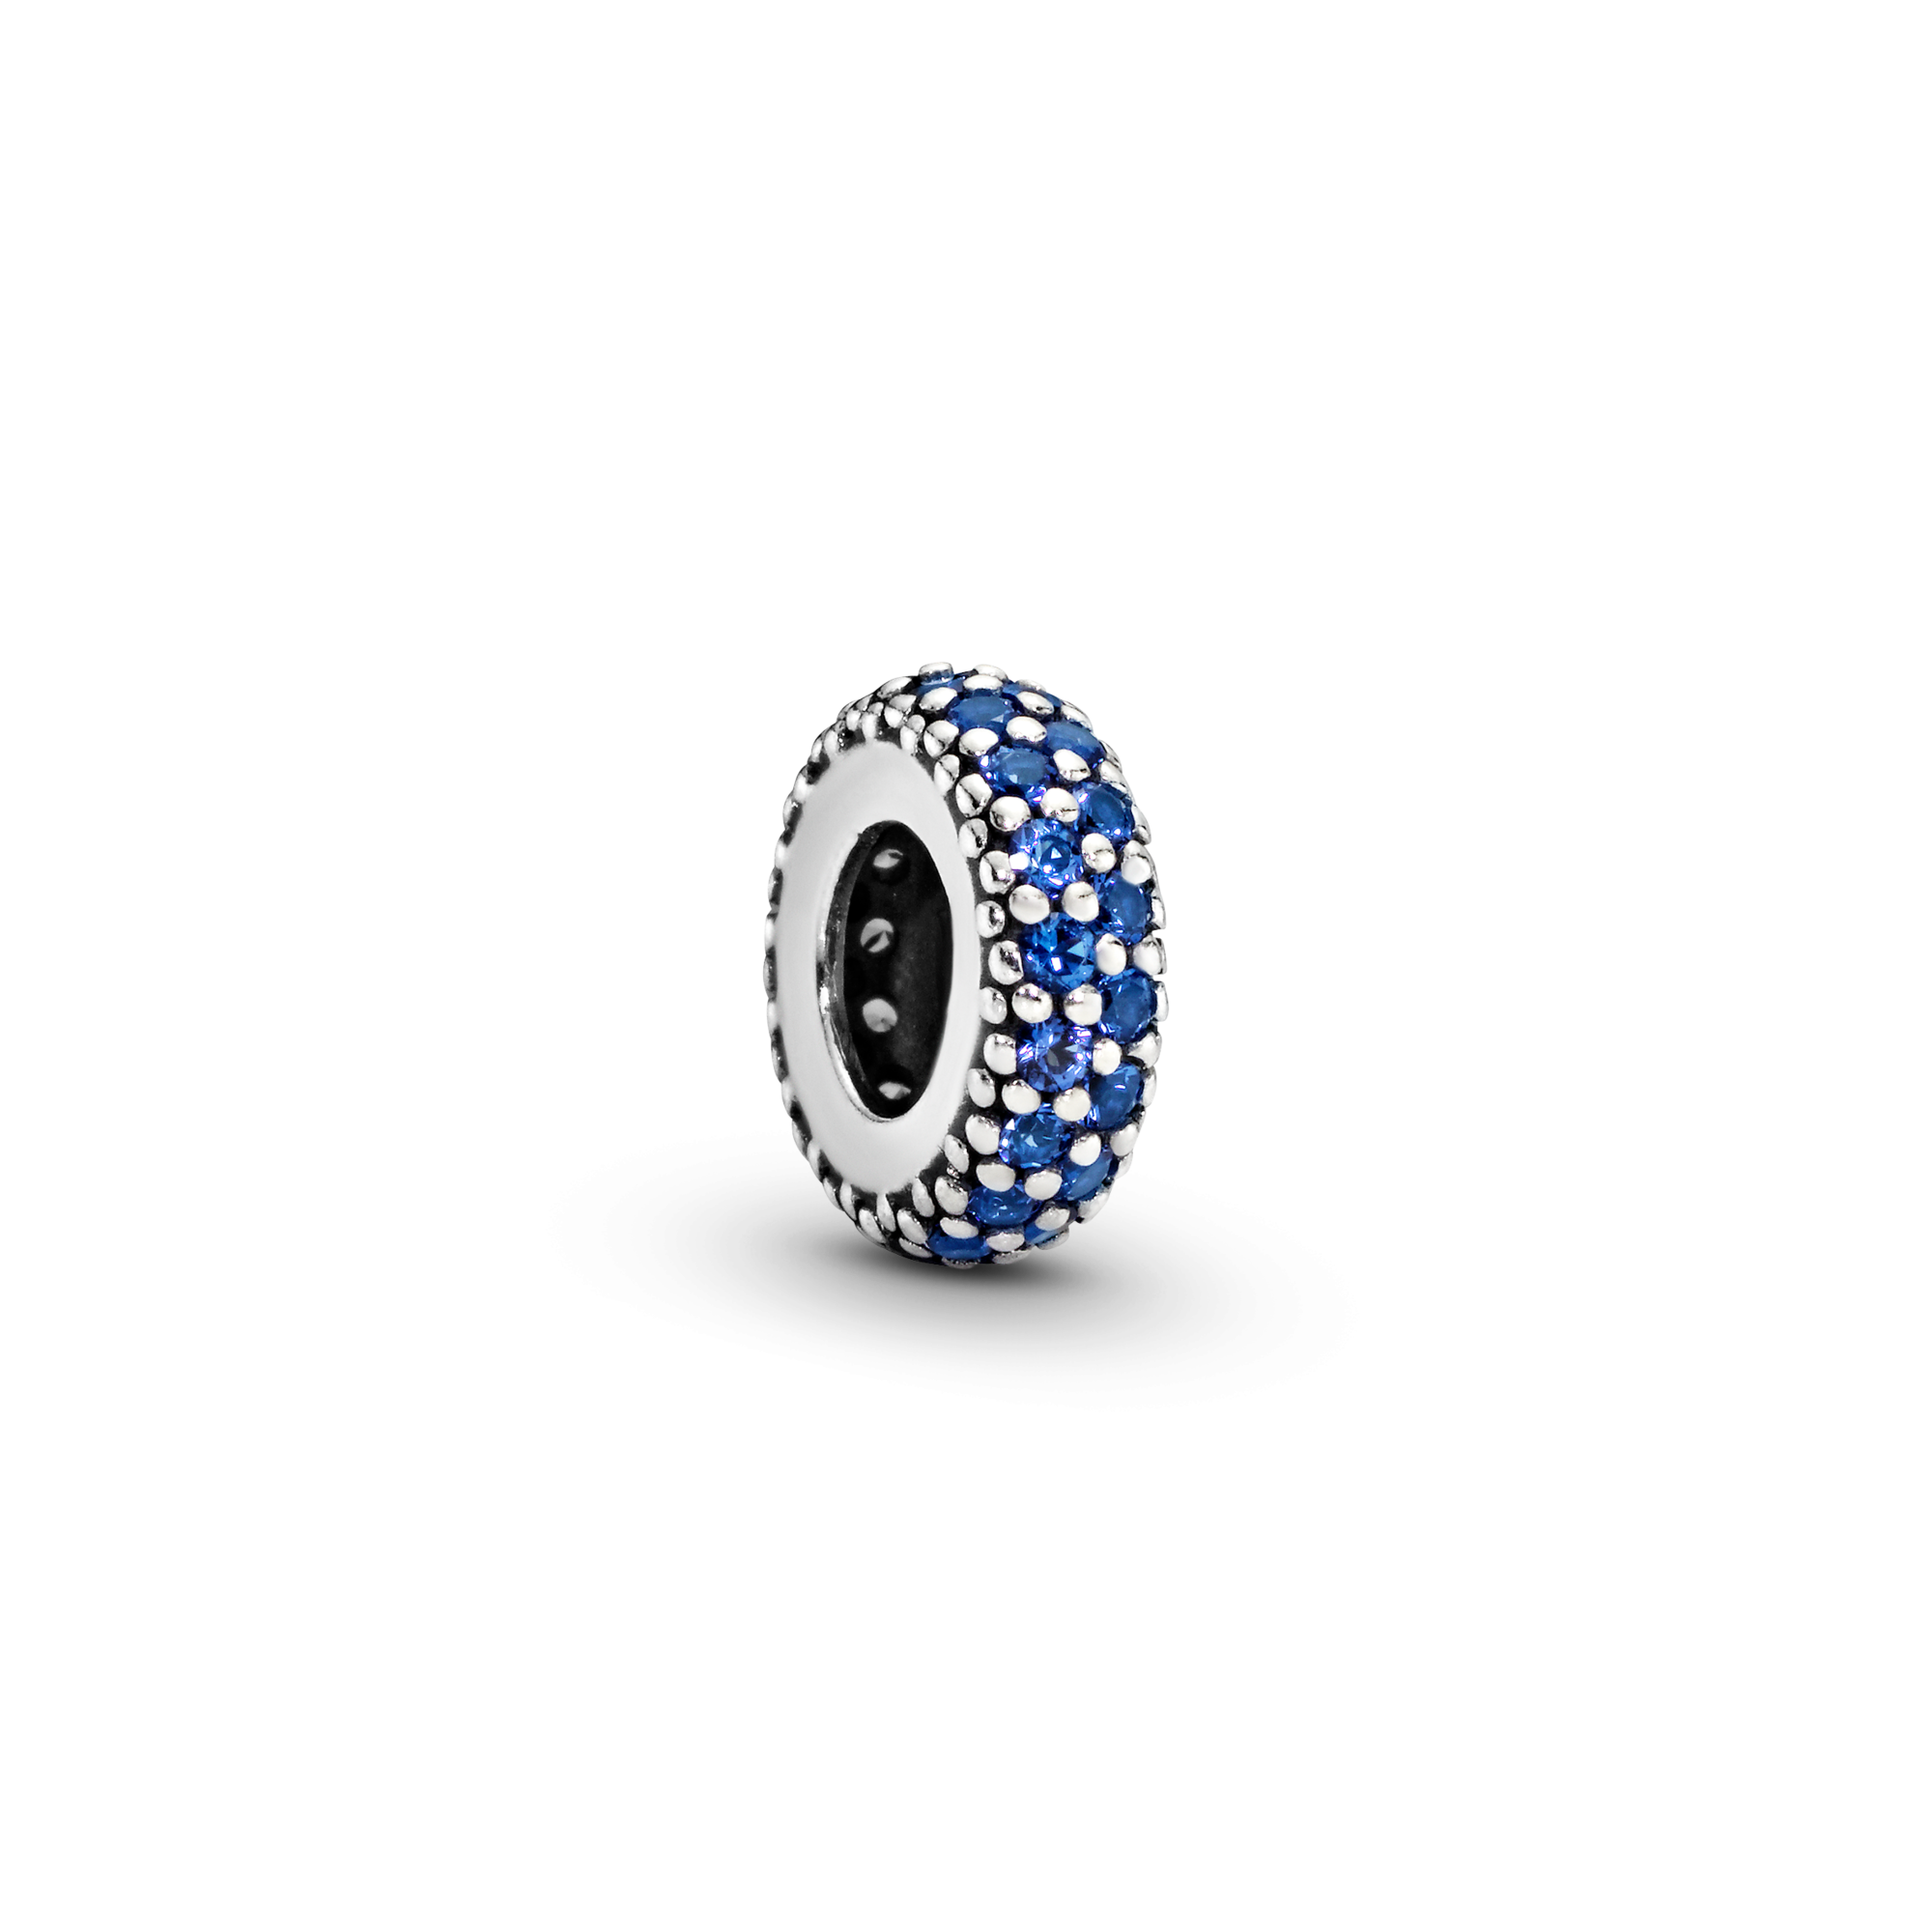 Blue Sparkle Spacer Charm